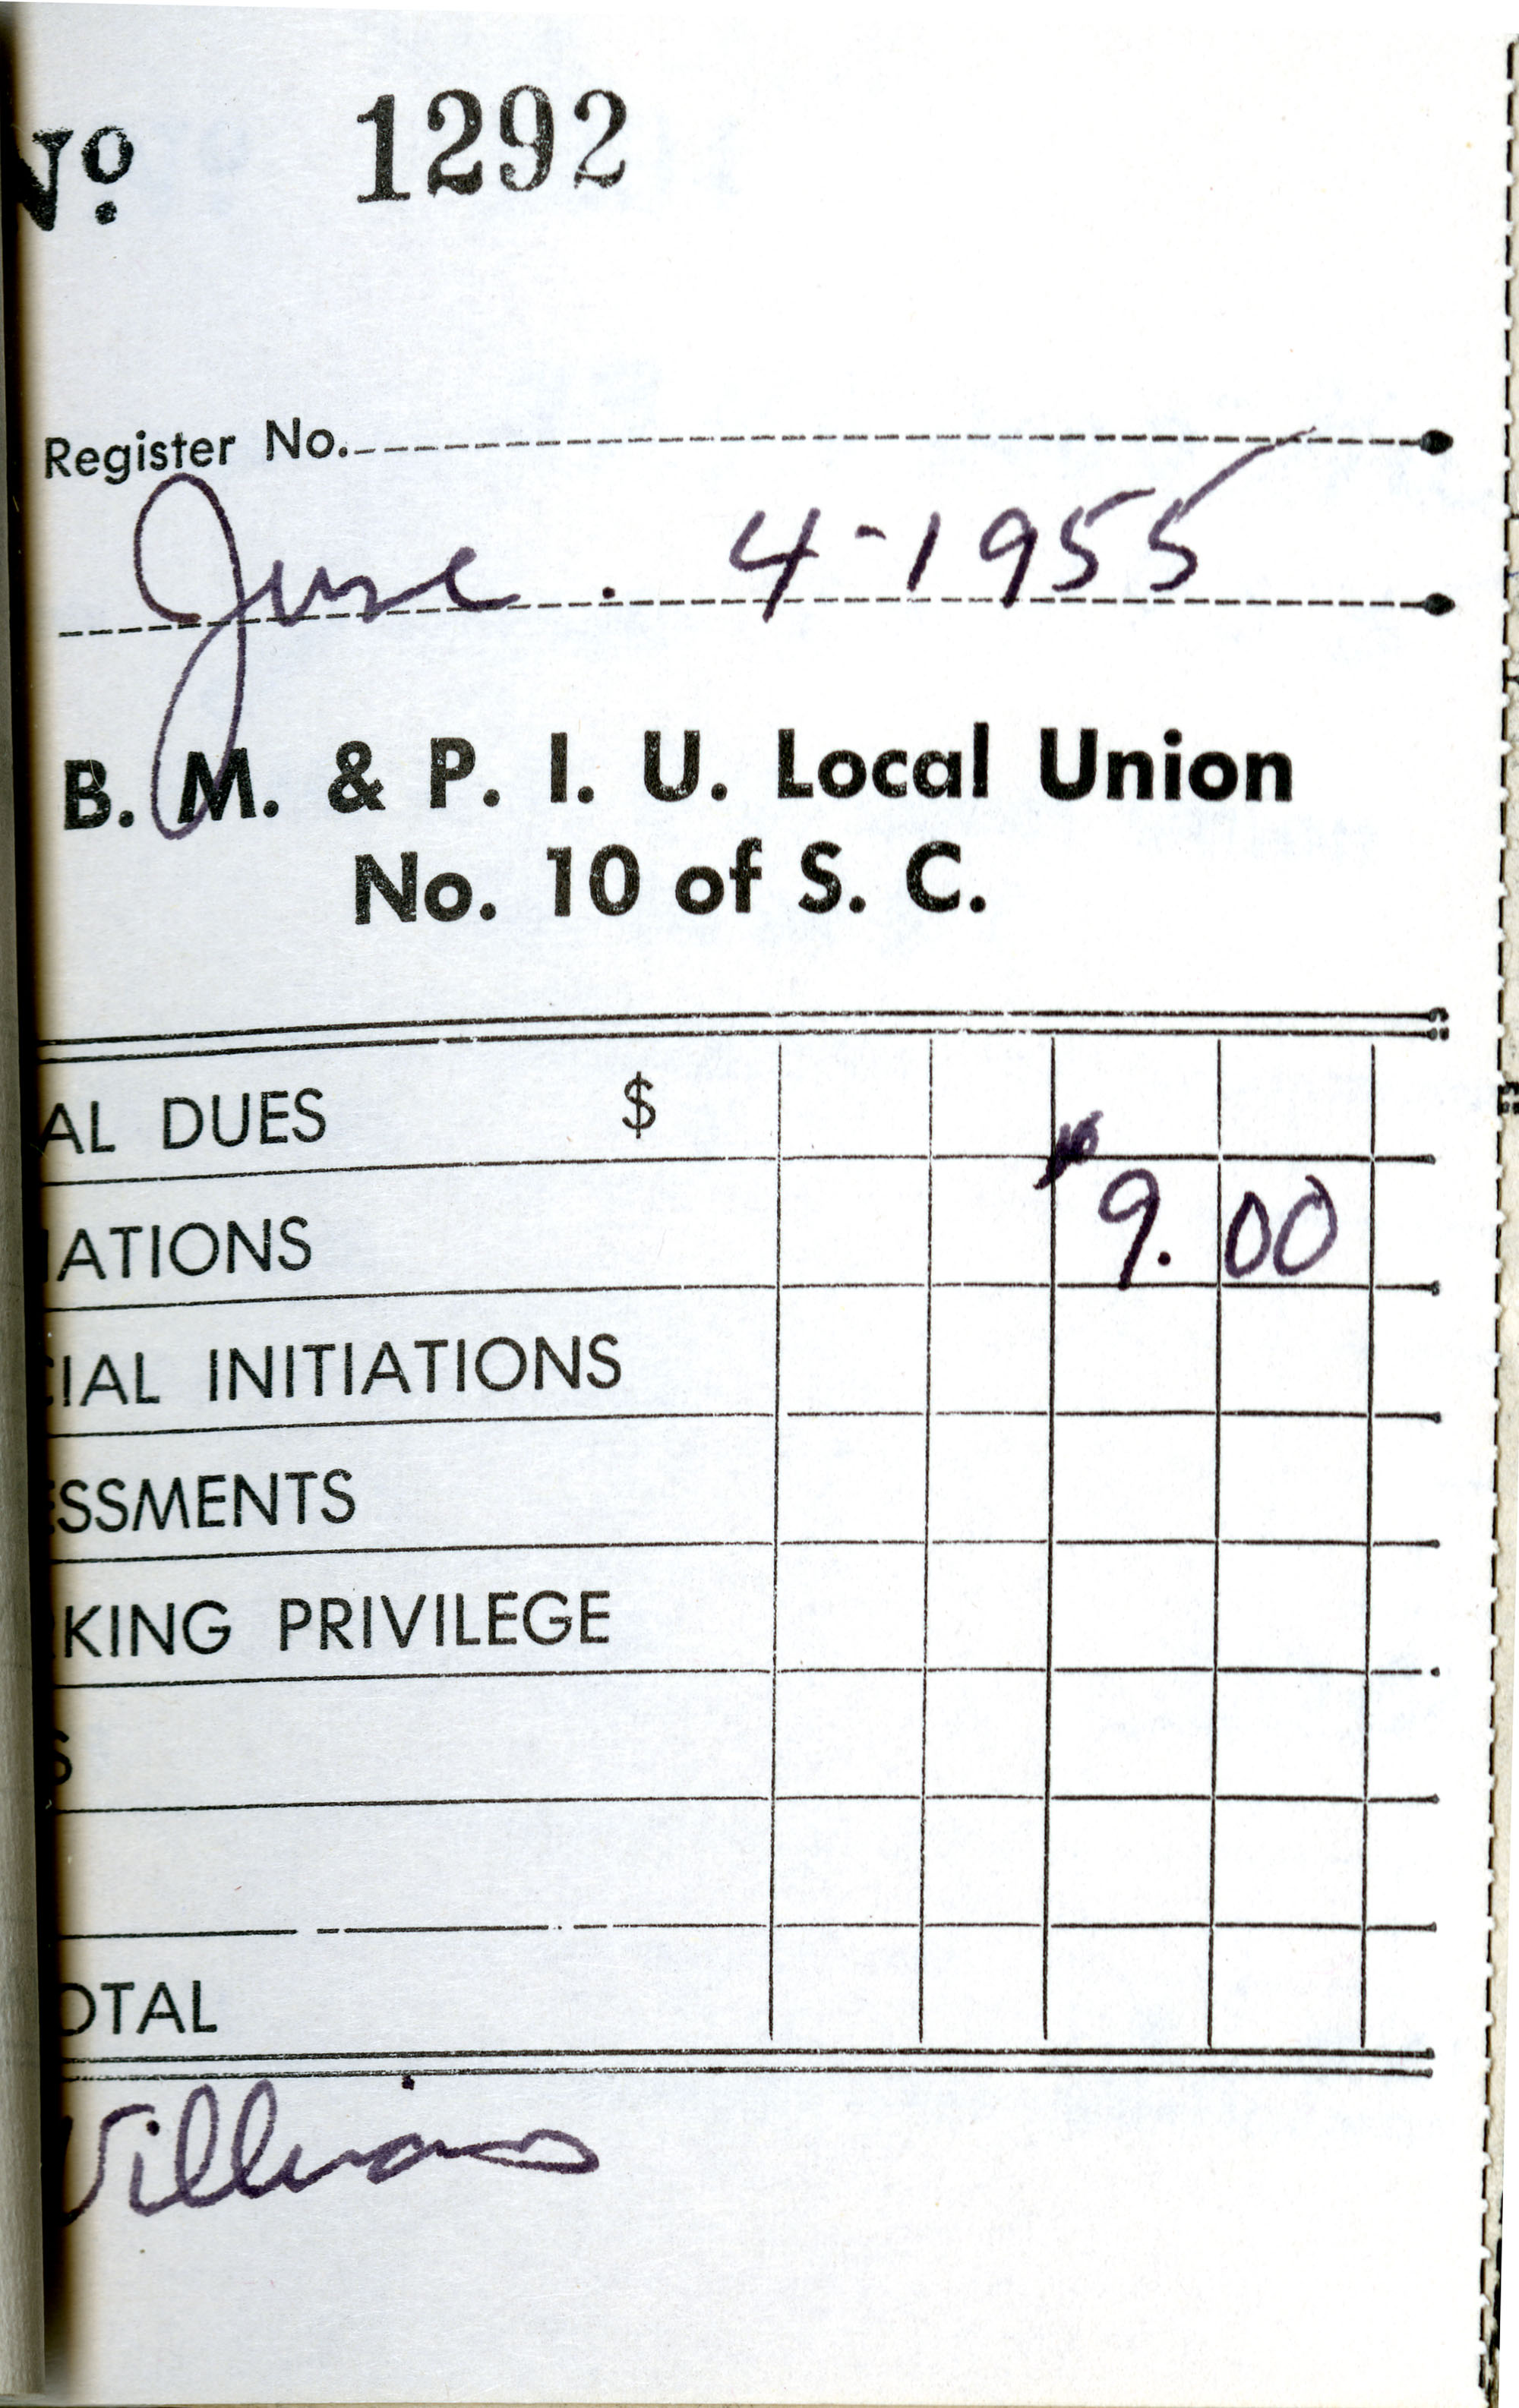 Receipt Book 4, Page 26